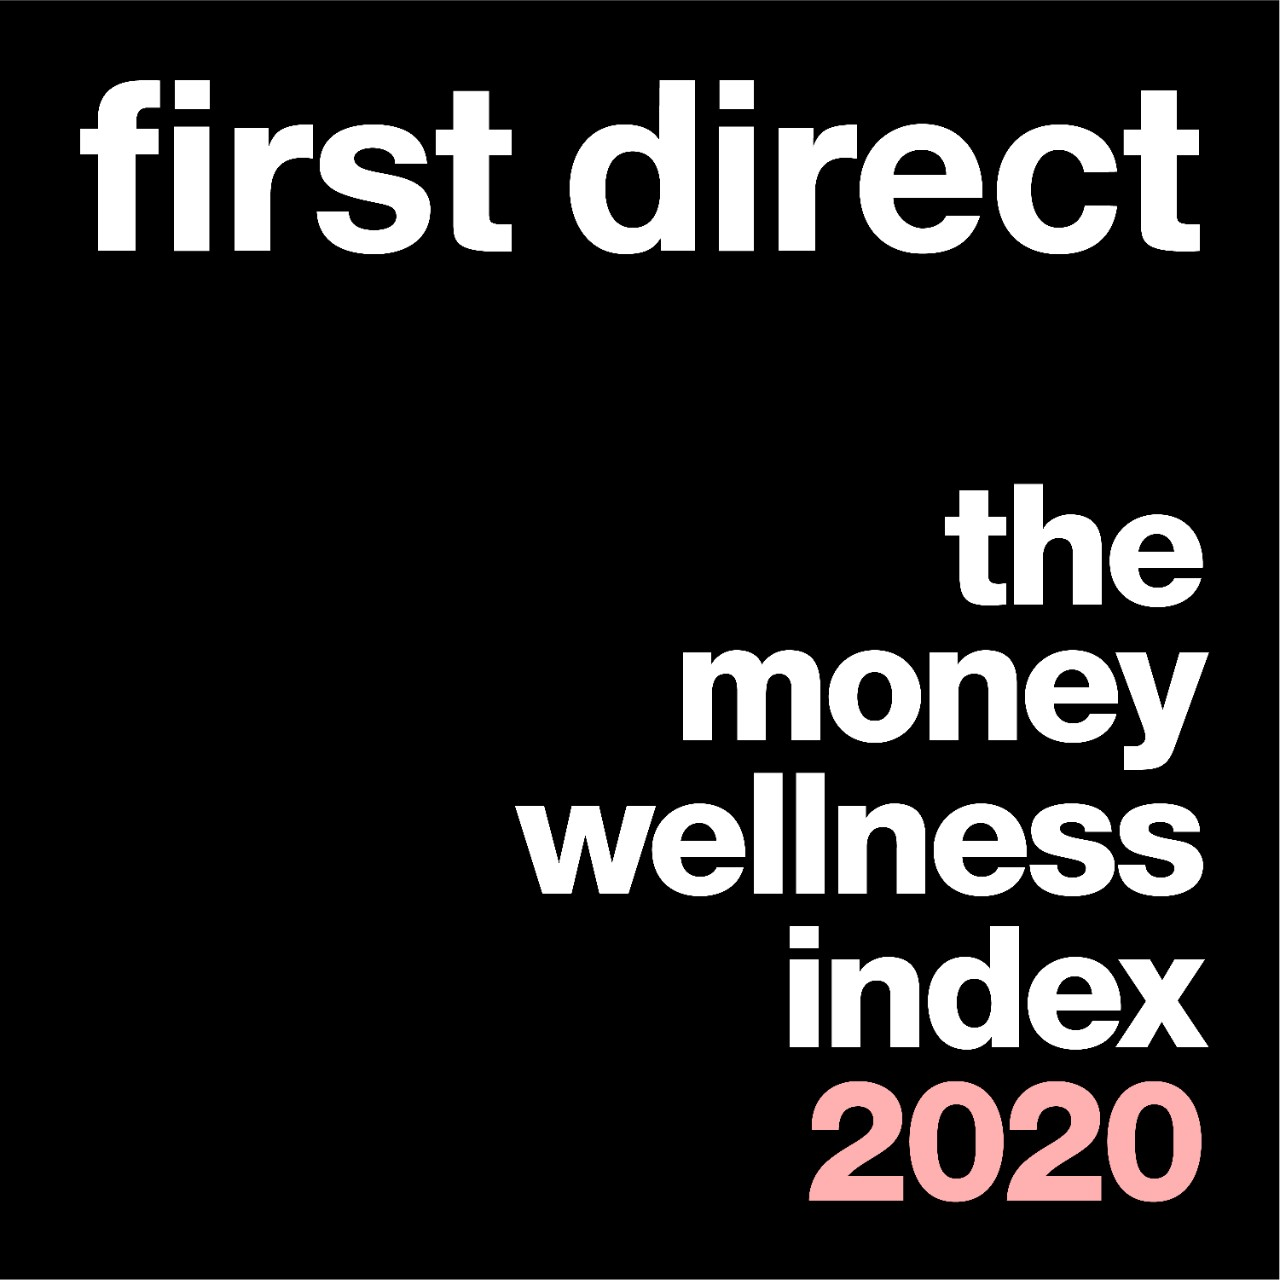 the money wellness index 2020 - find out more